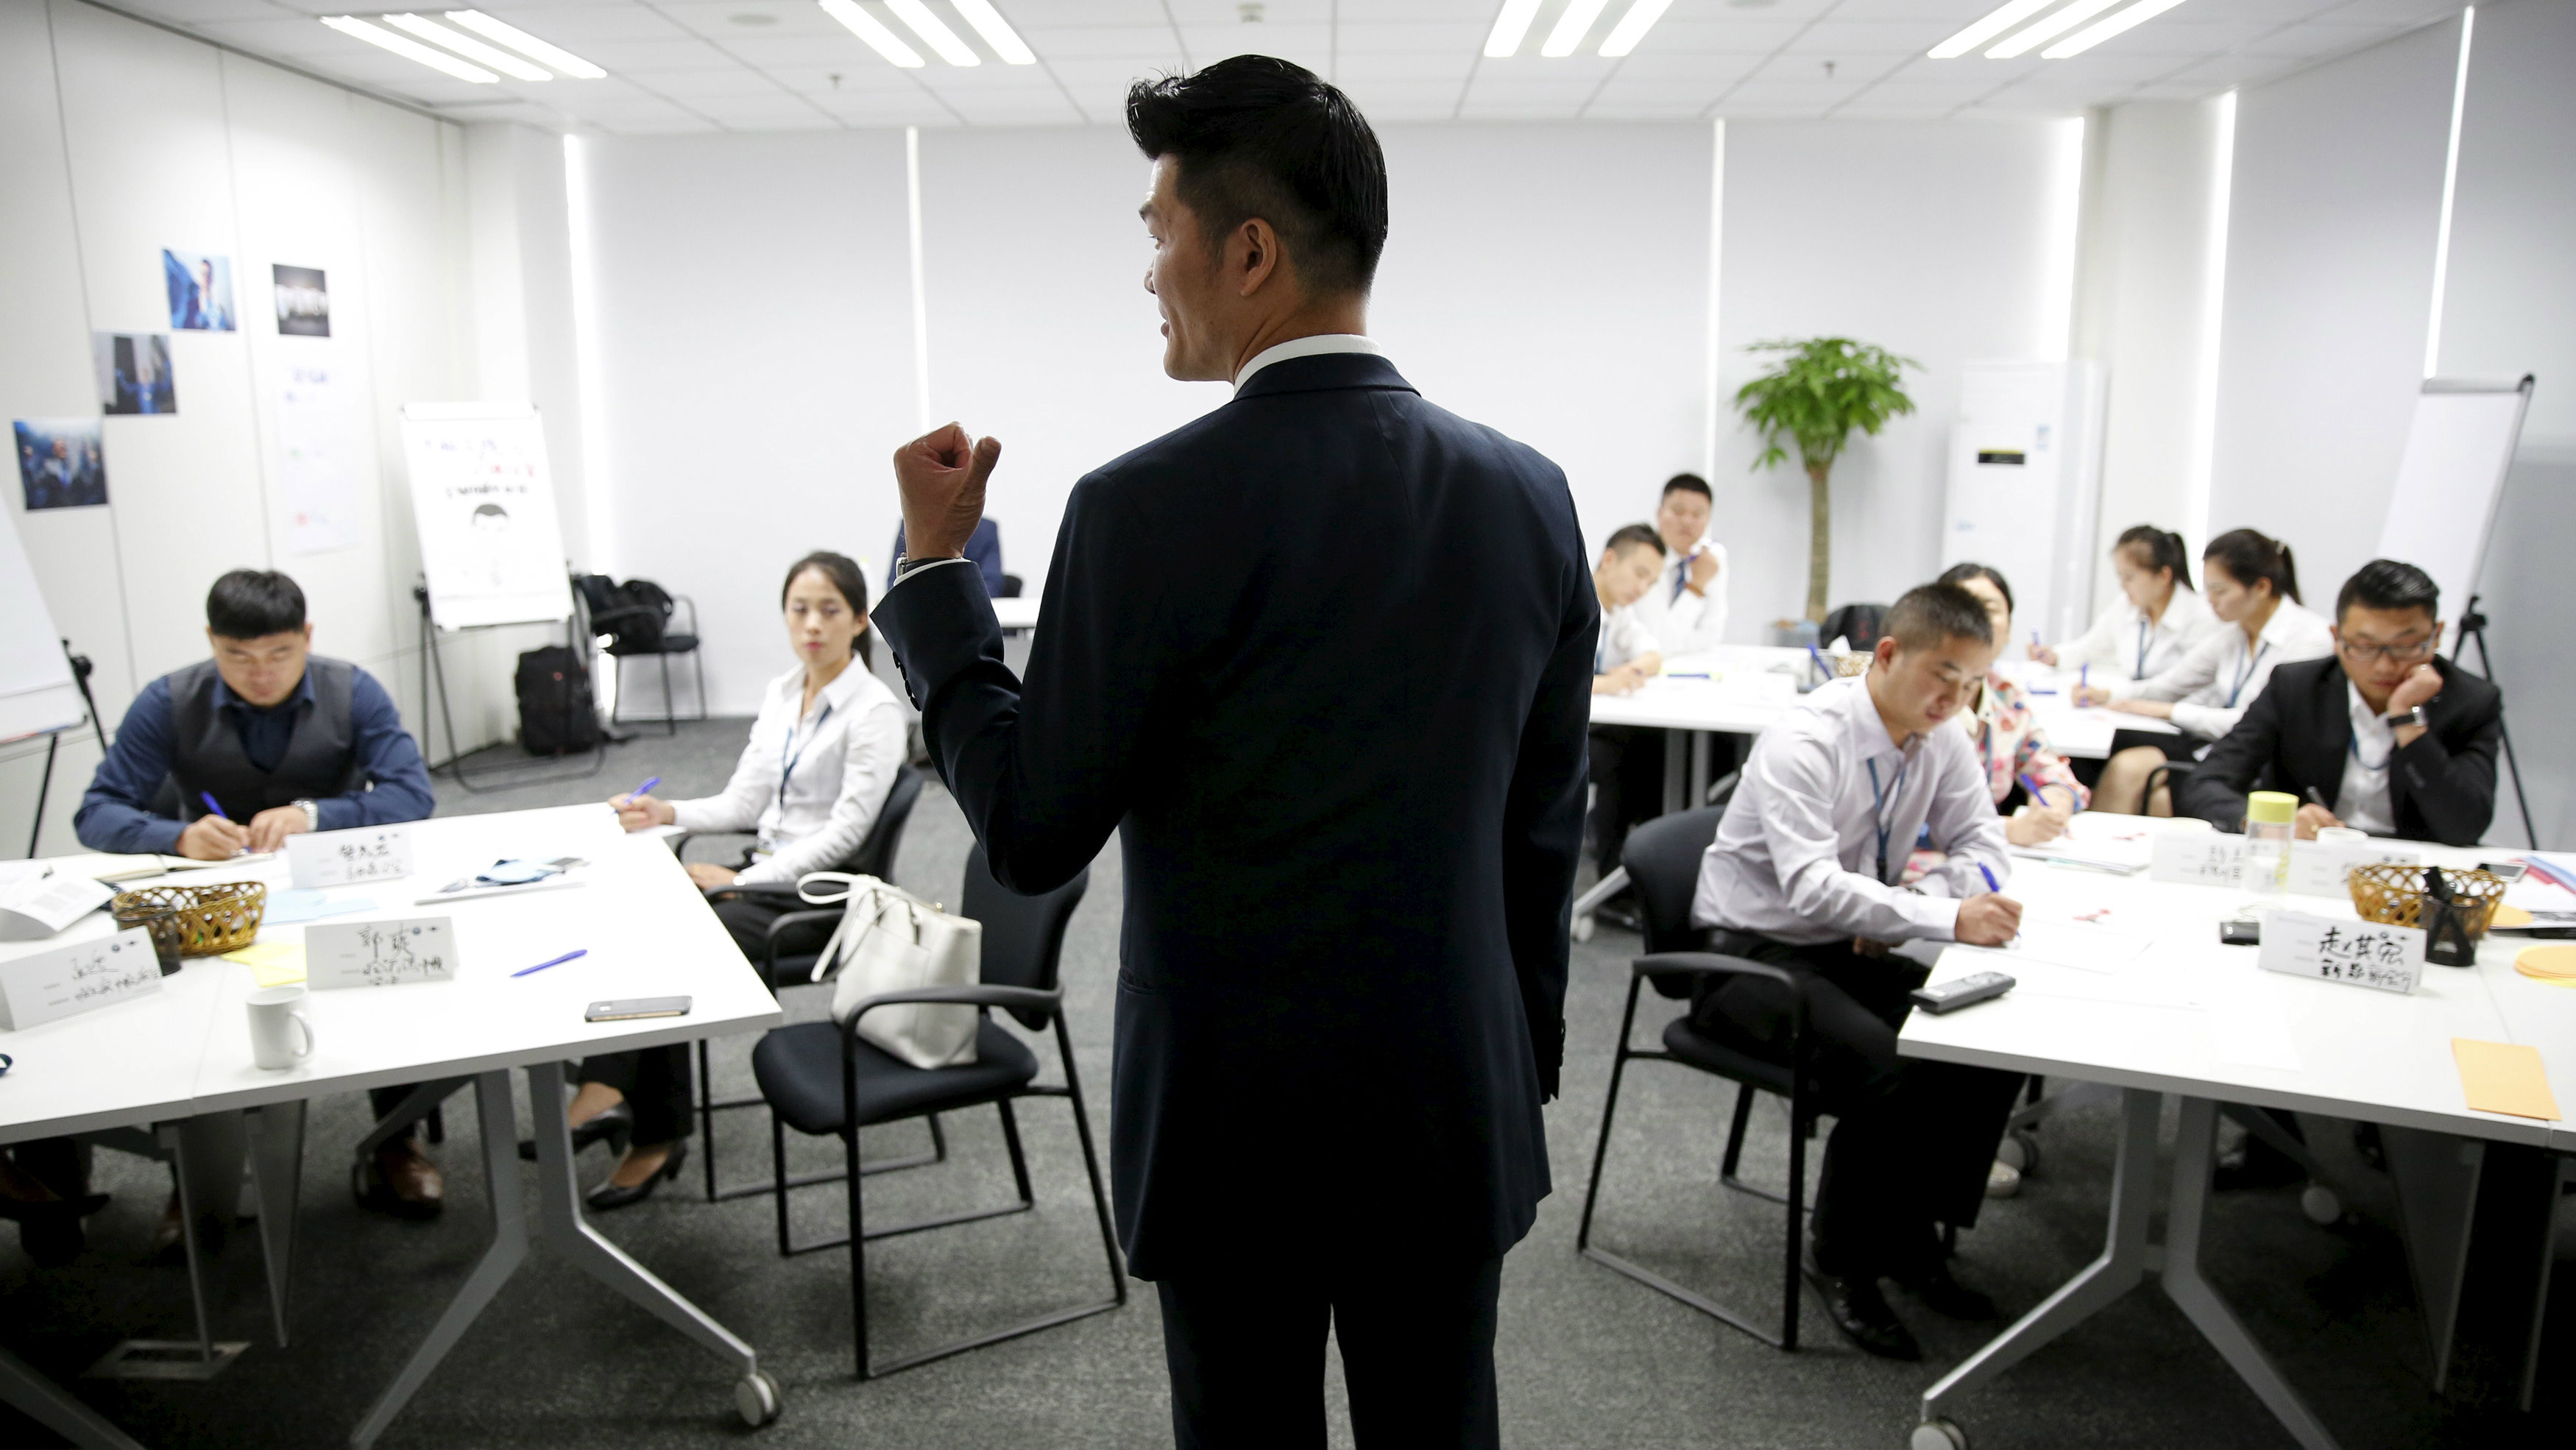 Trainer Lee Yida gives a lecture to dealership sales staffs during a sales camp at BMW Group Training Center in Beijing, China, September 9, 2015. At BMW, where deliveries to dealers in China have grown just 1 percent so far this year, this means putting recruits through sales 'boot camp' and turning experienced staff into spreadsheet wonks. The world's top luxury car maker this month opened its largest Asia training centre in Xi'an in Shaanxi province. It is also rolling out online training phone apps and having in-house trainers at dealerships look after basic skills so training centres can focus on teaching more advanced skills. Training classes have shifted to help dealers identify areas they can change for a quick improvement in results, said BMW's China training chief Xiao Yi. Picture taken on September 9, 2015. REUTERS/Kim Kyung-Hoon